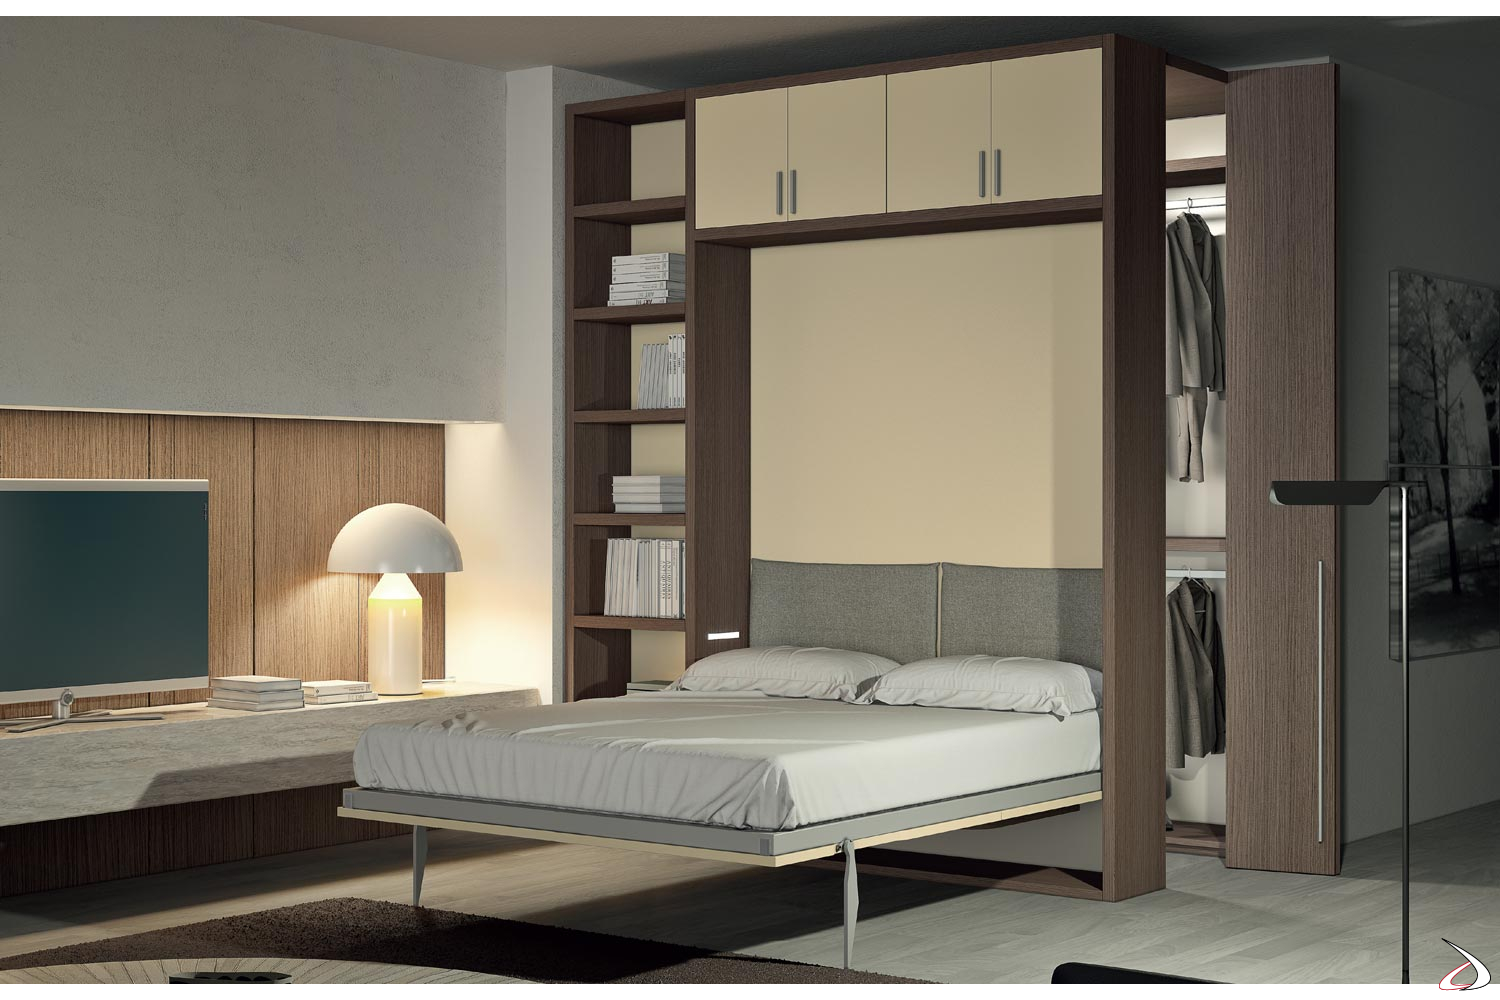 Armadio Letto.Bed With Berol Wardrobe Toparredi Arredo Design Online